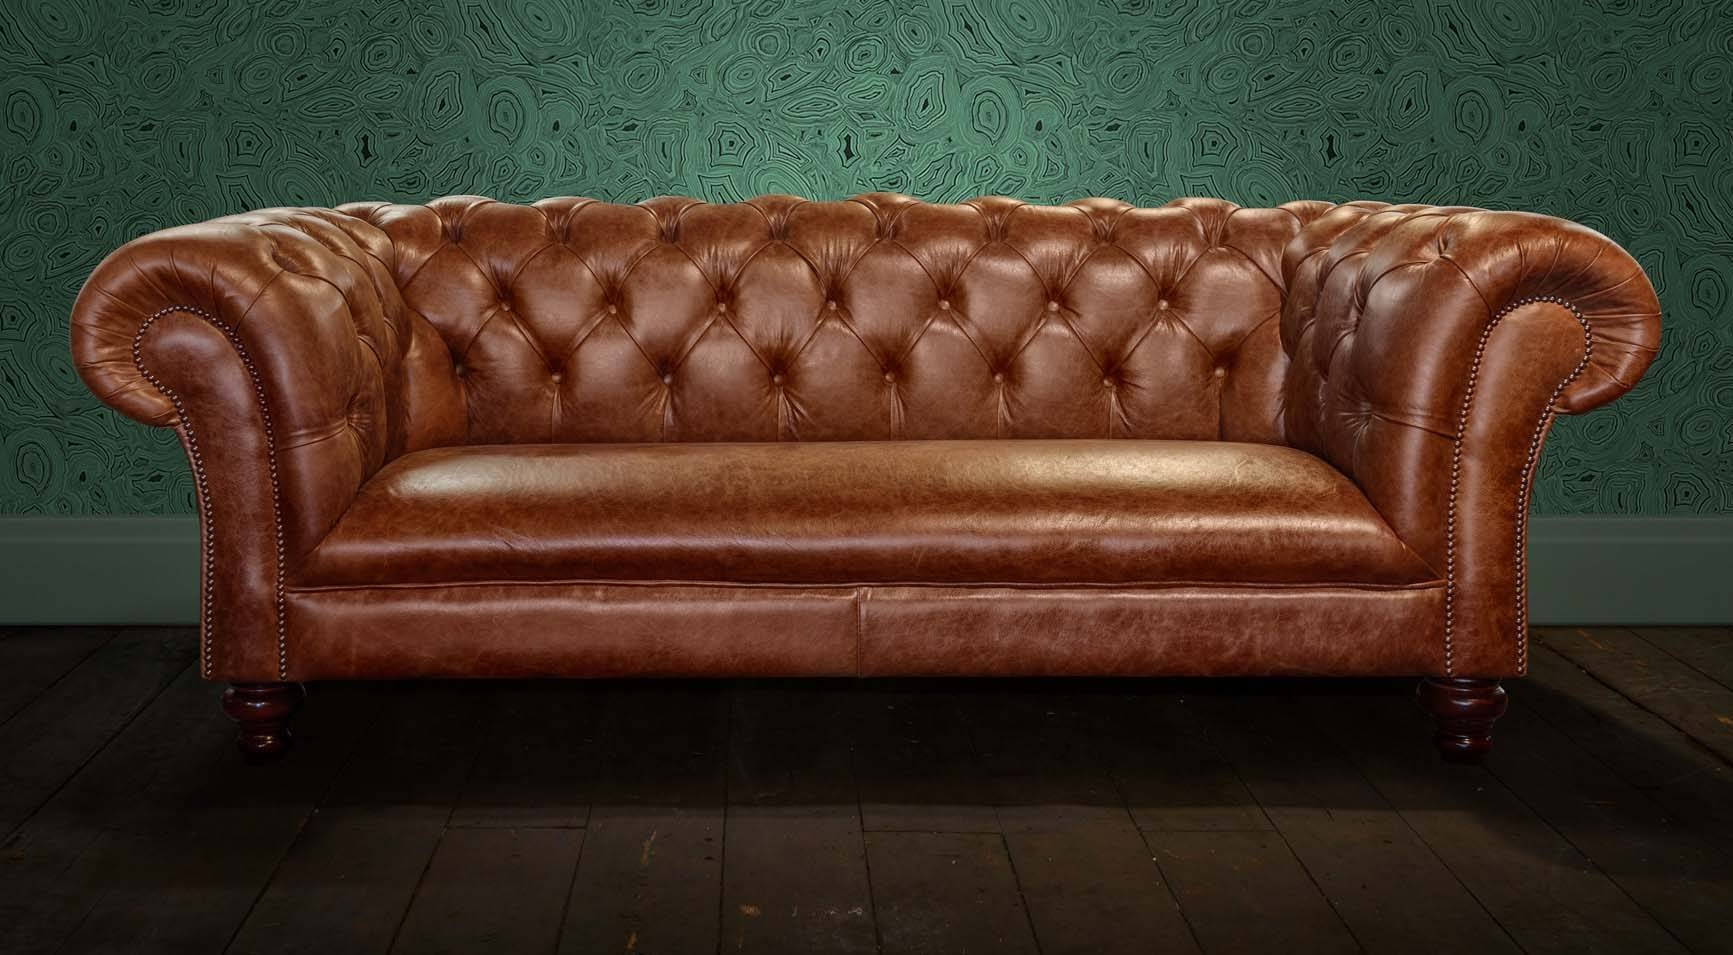 Chesterfields Of England | The Original Chesterfield Company For Chesterfield Sofas (View 16 of 30)